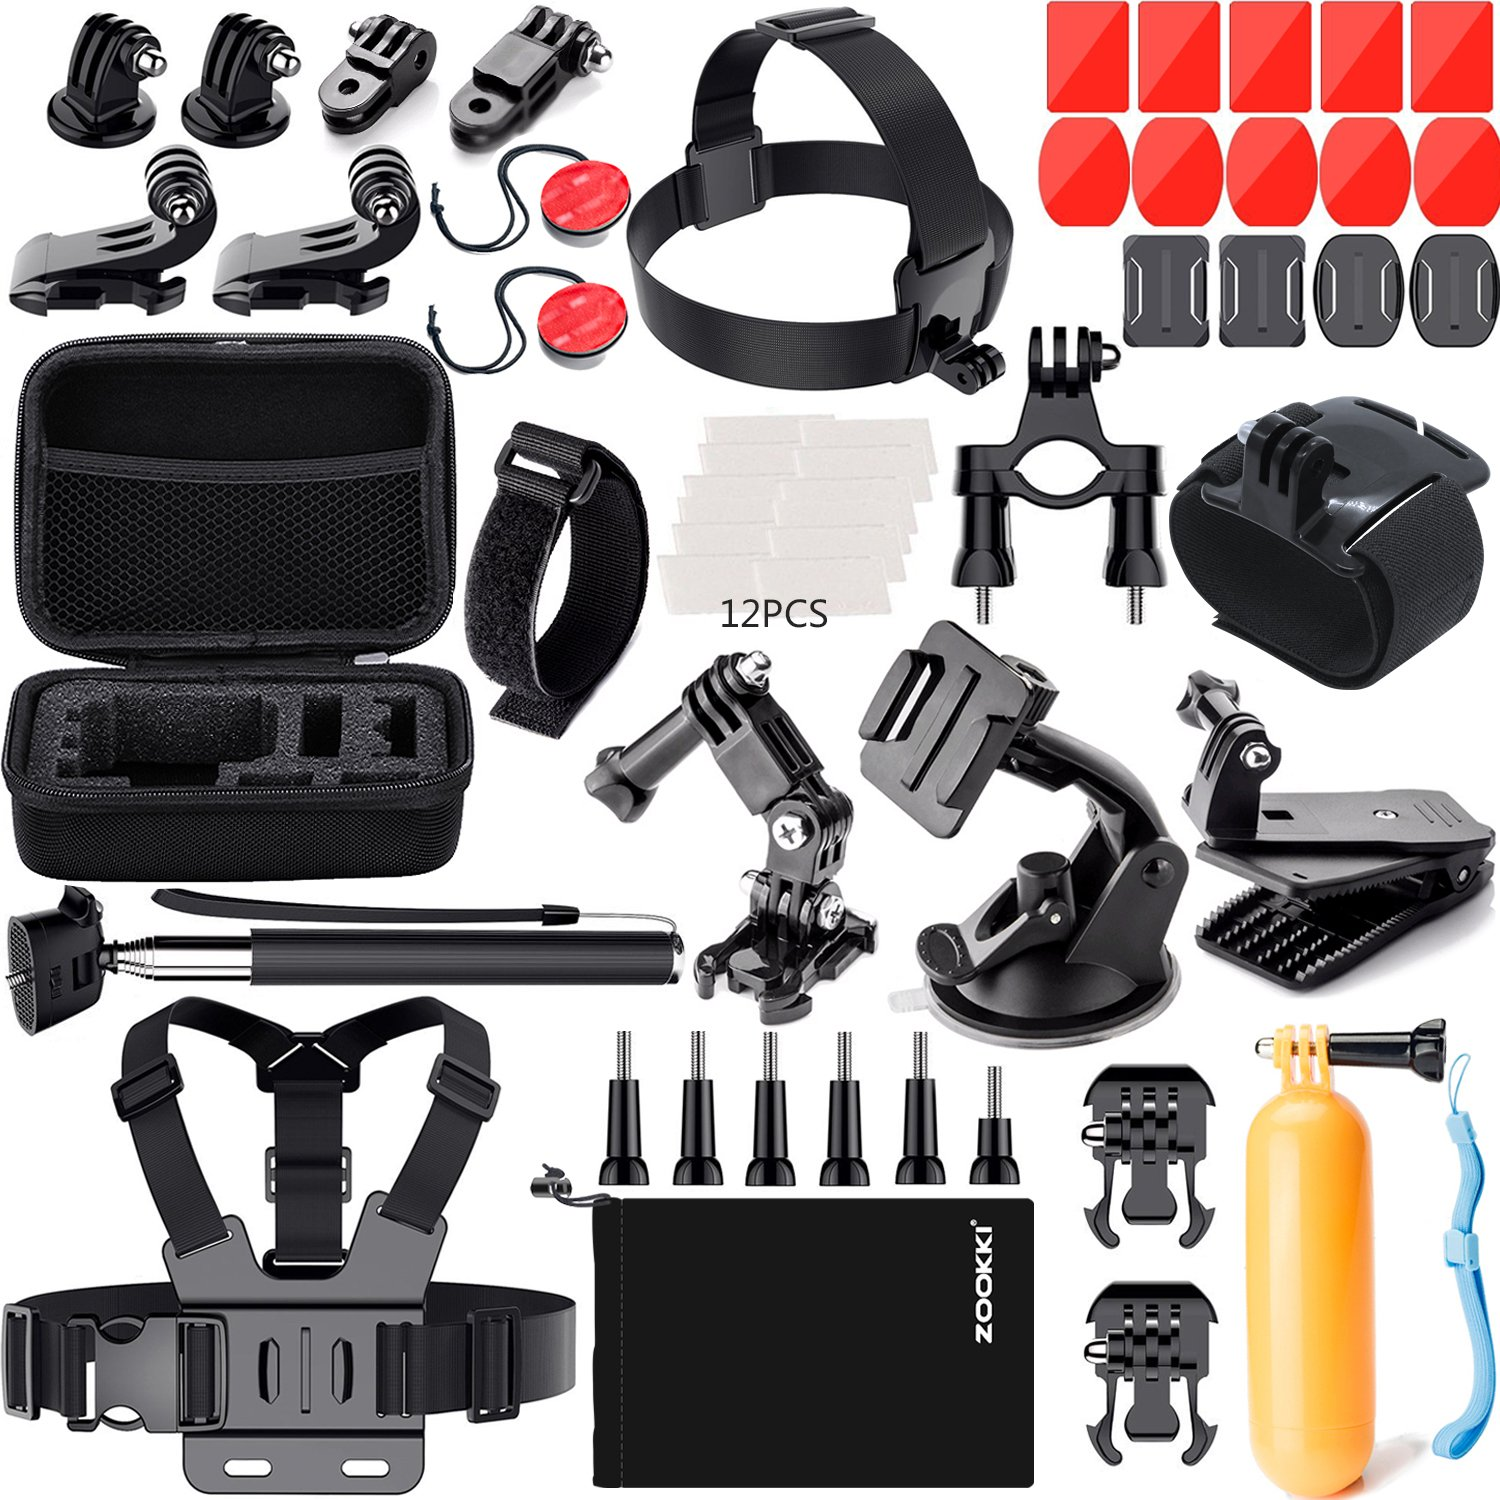 ZOOKKI Accessories Kit for GoPro 6 Hero 5 Session 4 Silver 3 Black SJ4000/SJ5000/SJ5000X/SJ6 LEGEND/SJ7 Sports Camera Accessories Set for Xiaomi Yi 4K/Lightdow/DBPOWER/dOvOb by ZOOKKI